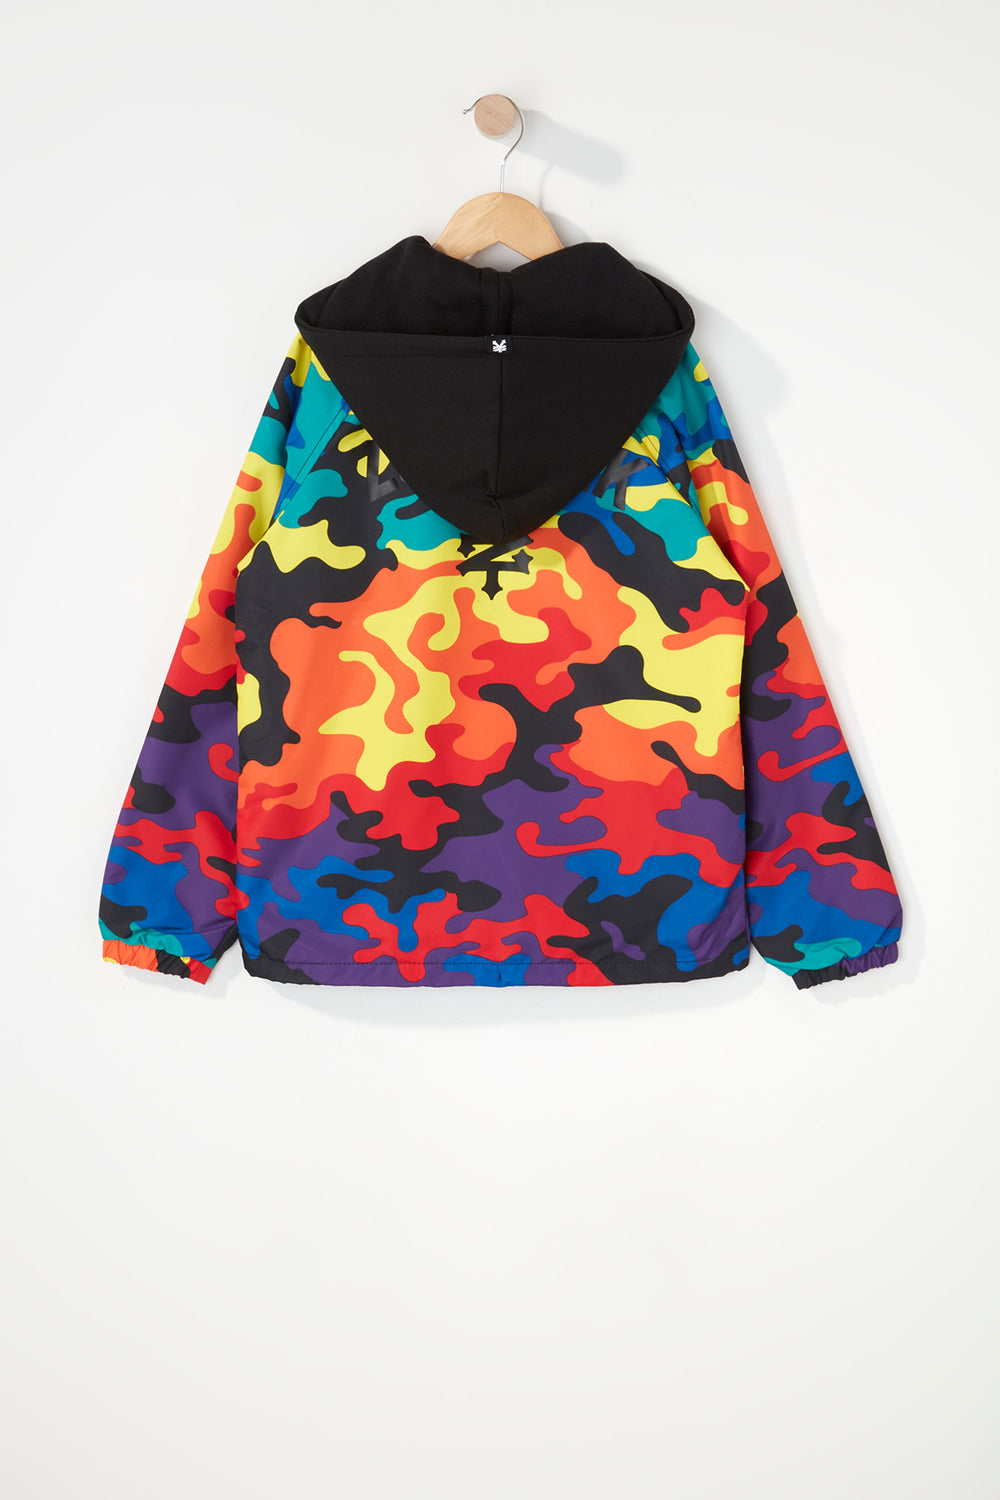 Zoo York Boys Rainbow Camo Hooded Jacket Multi